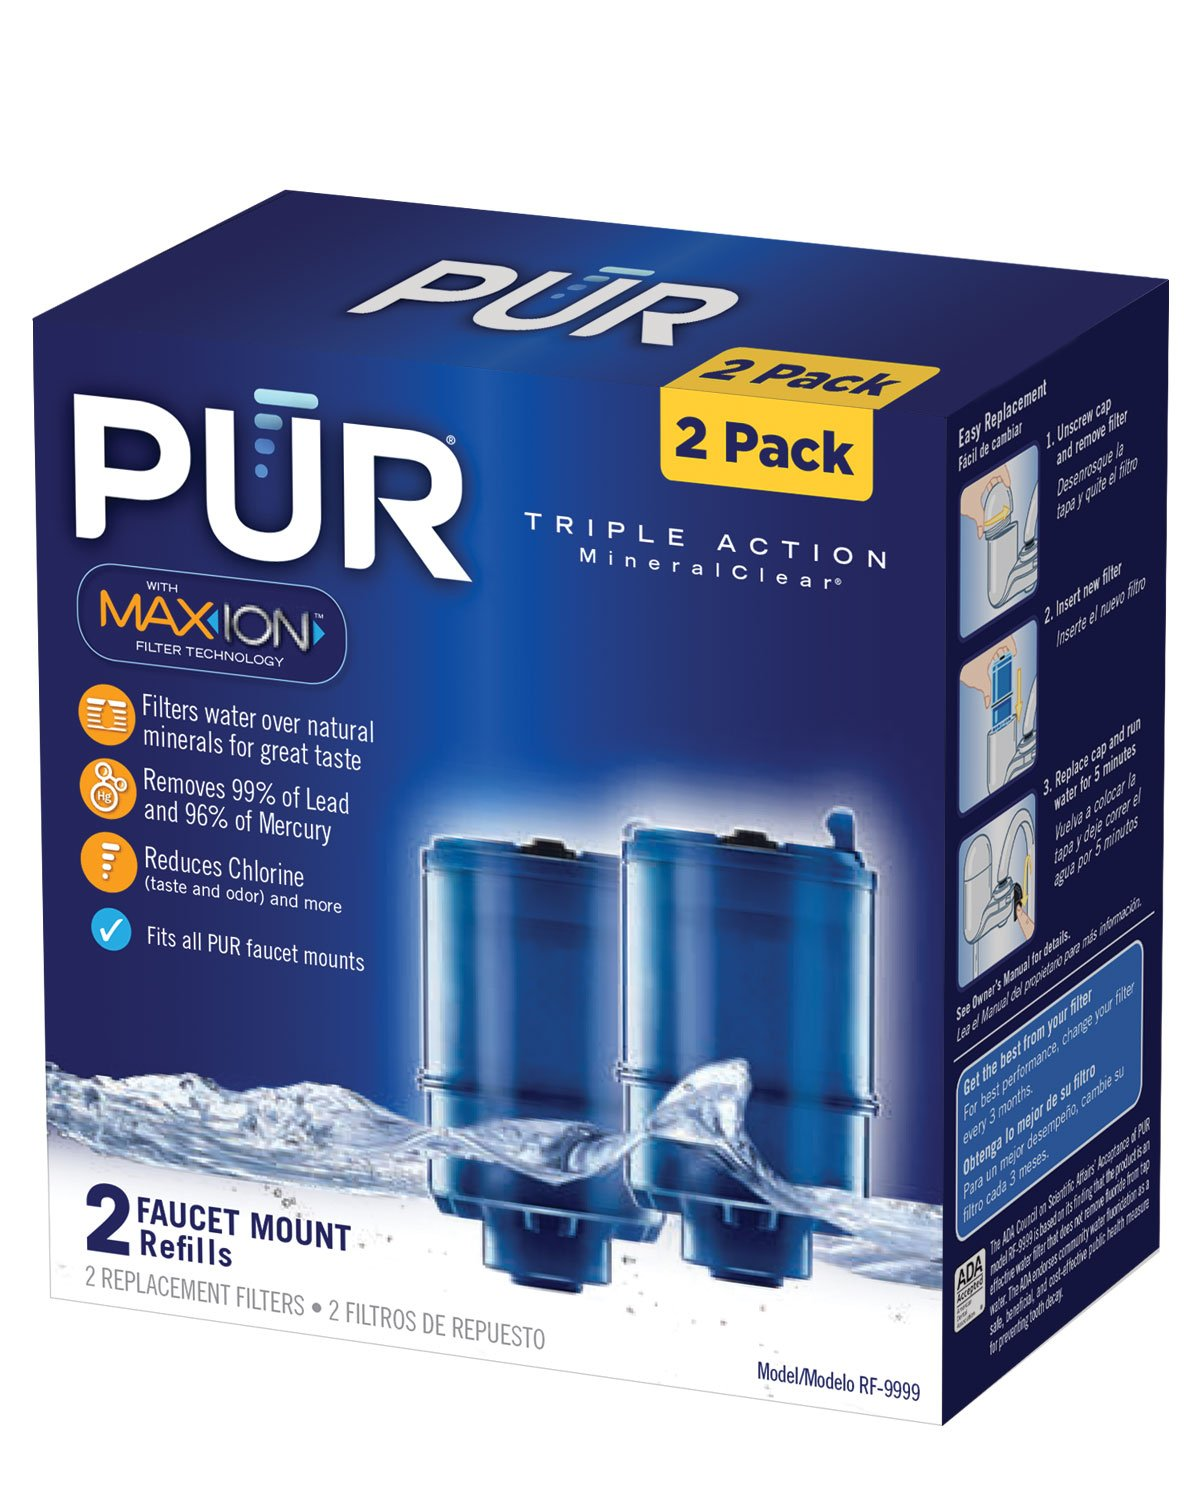 PUR MineralClear Faucet Mount Replacement Water Filter Refill, 2 Pack, Water Filter Replacement for Sink Faucet Mounted Water Filter Systems, Filters Up To 100 Gallons of Water, RF-9999 by PUR (Image #2)